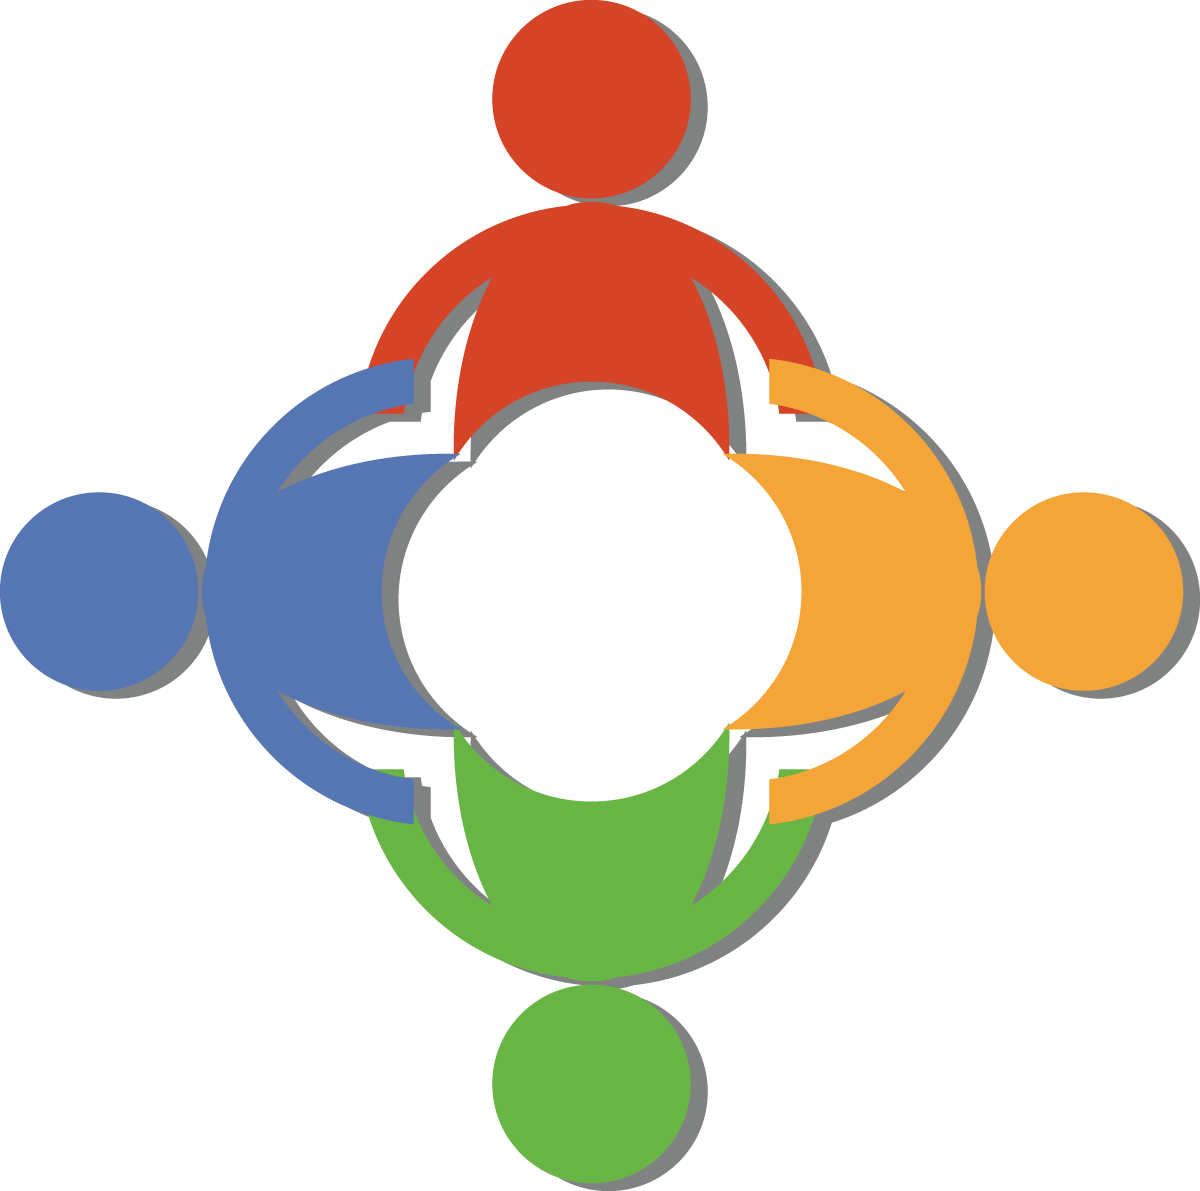 Circle of people holding hands clipart